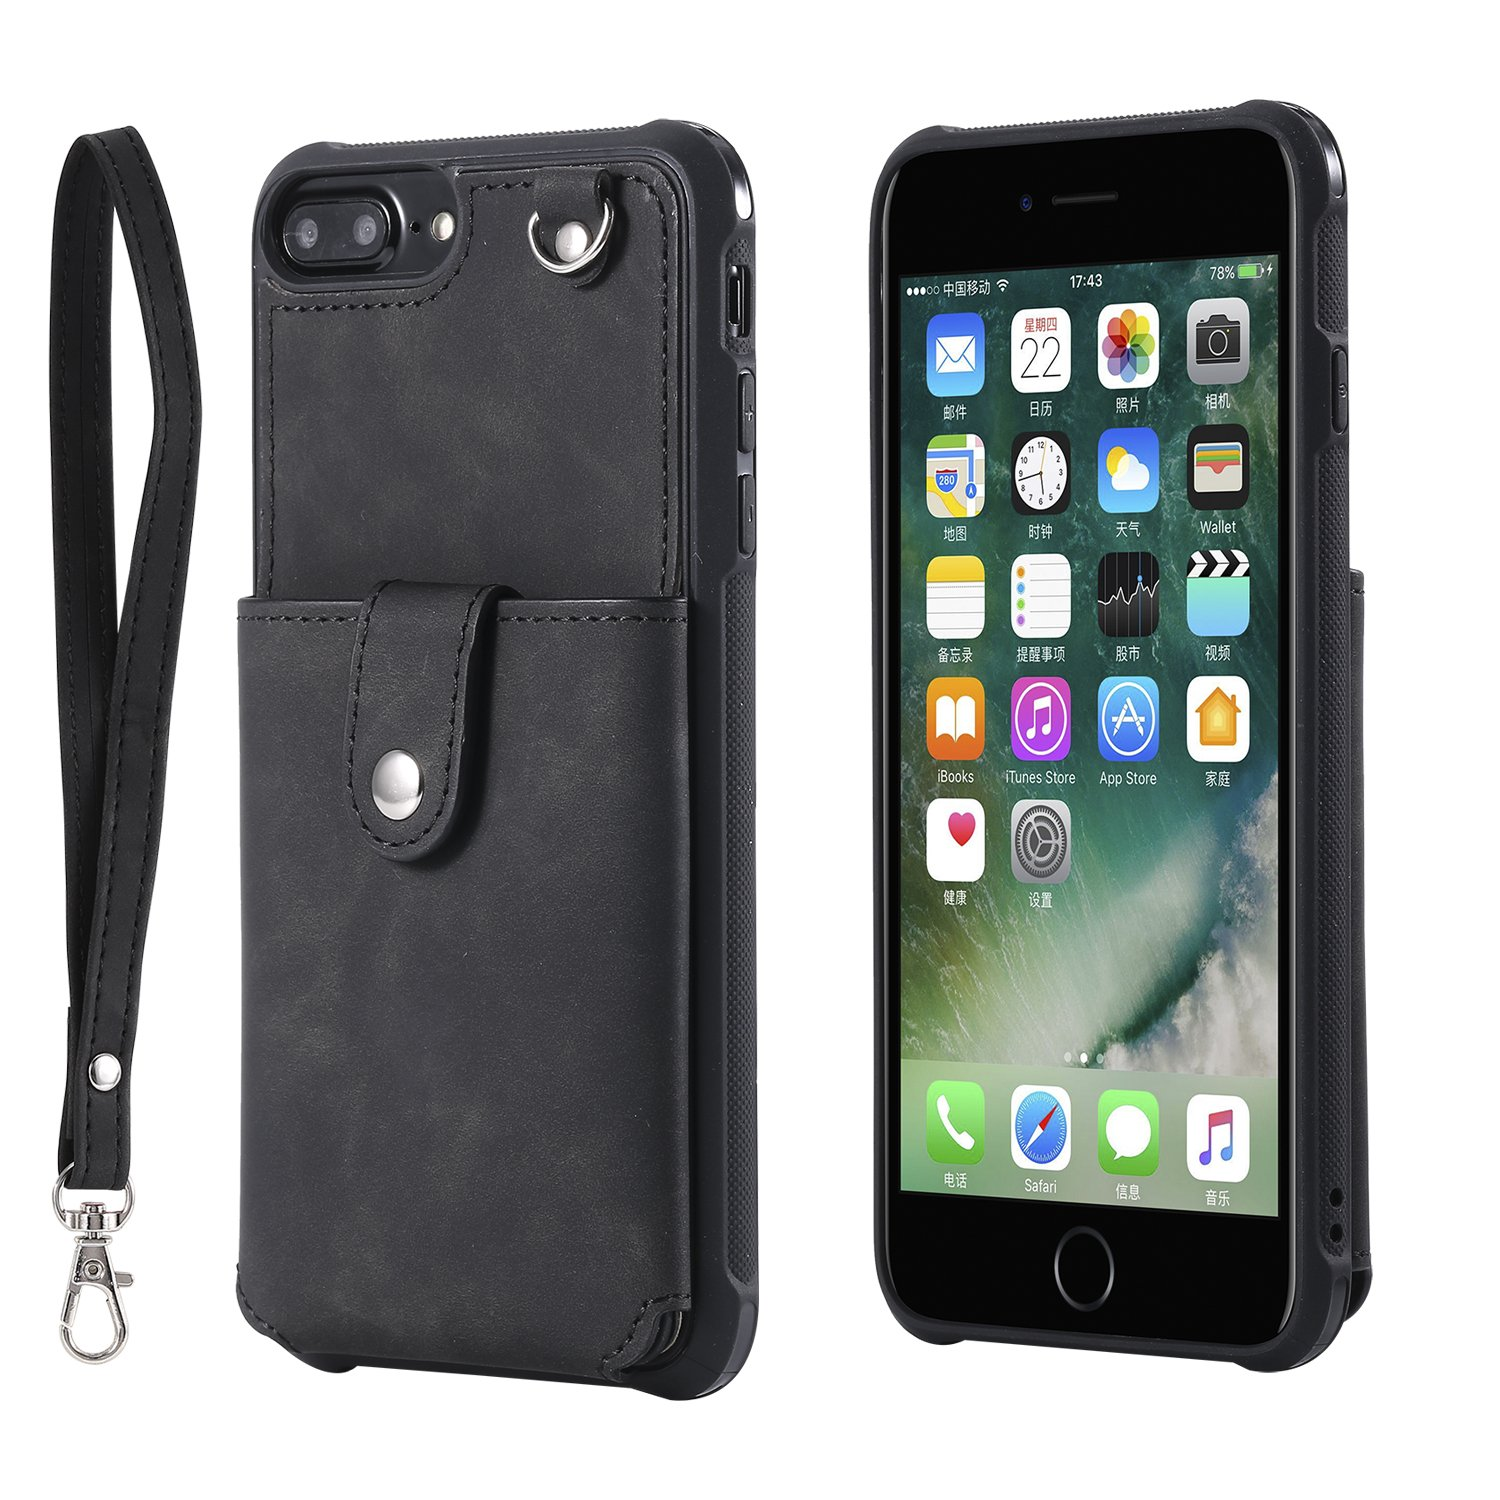 DAMONDY for iPhone 7 Plus Case,Wallet Purse Card Package Mirror Holders Design Magnetic Cover Soft Shockproof Bumper Flip Leather Kickstand Clasp Wrist Strap Case for iPhone 8 Plus-Black by DAMONDY